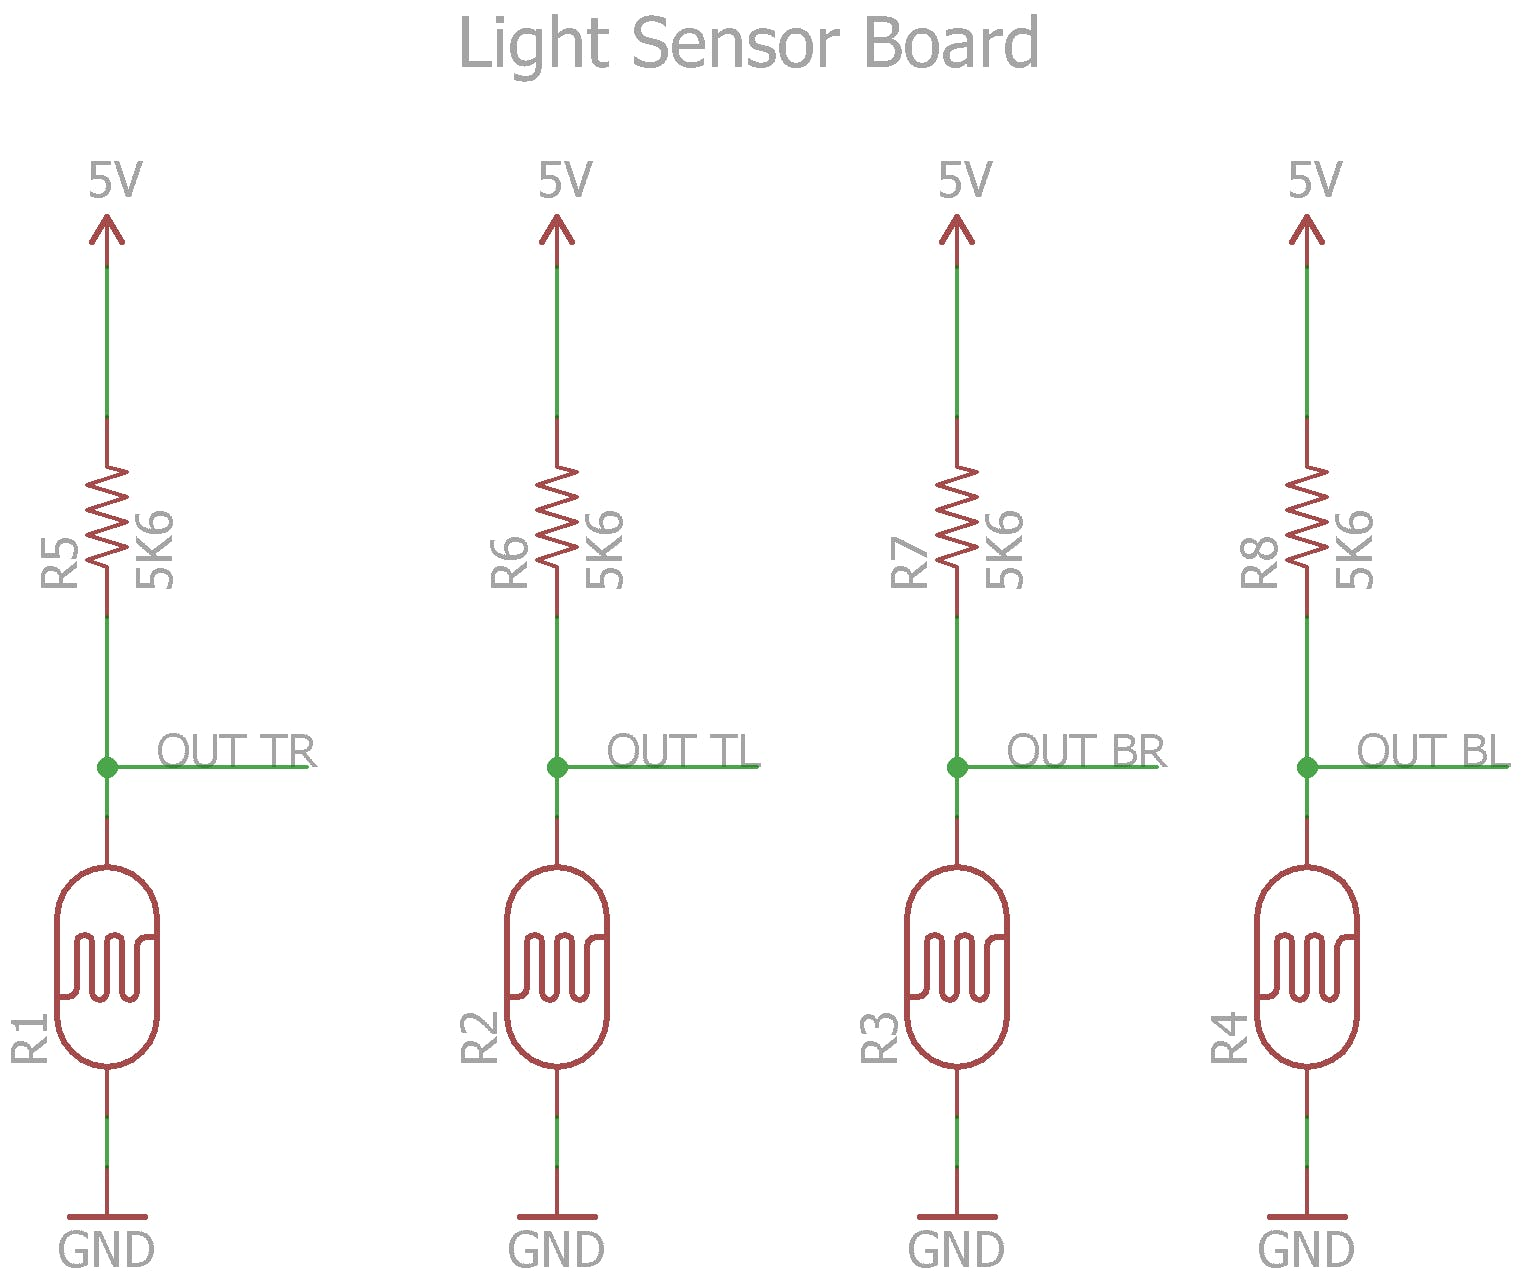 Four Light Dependant Resistors and their voltage dividers